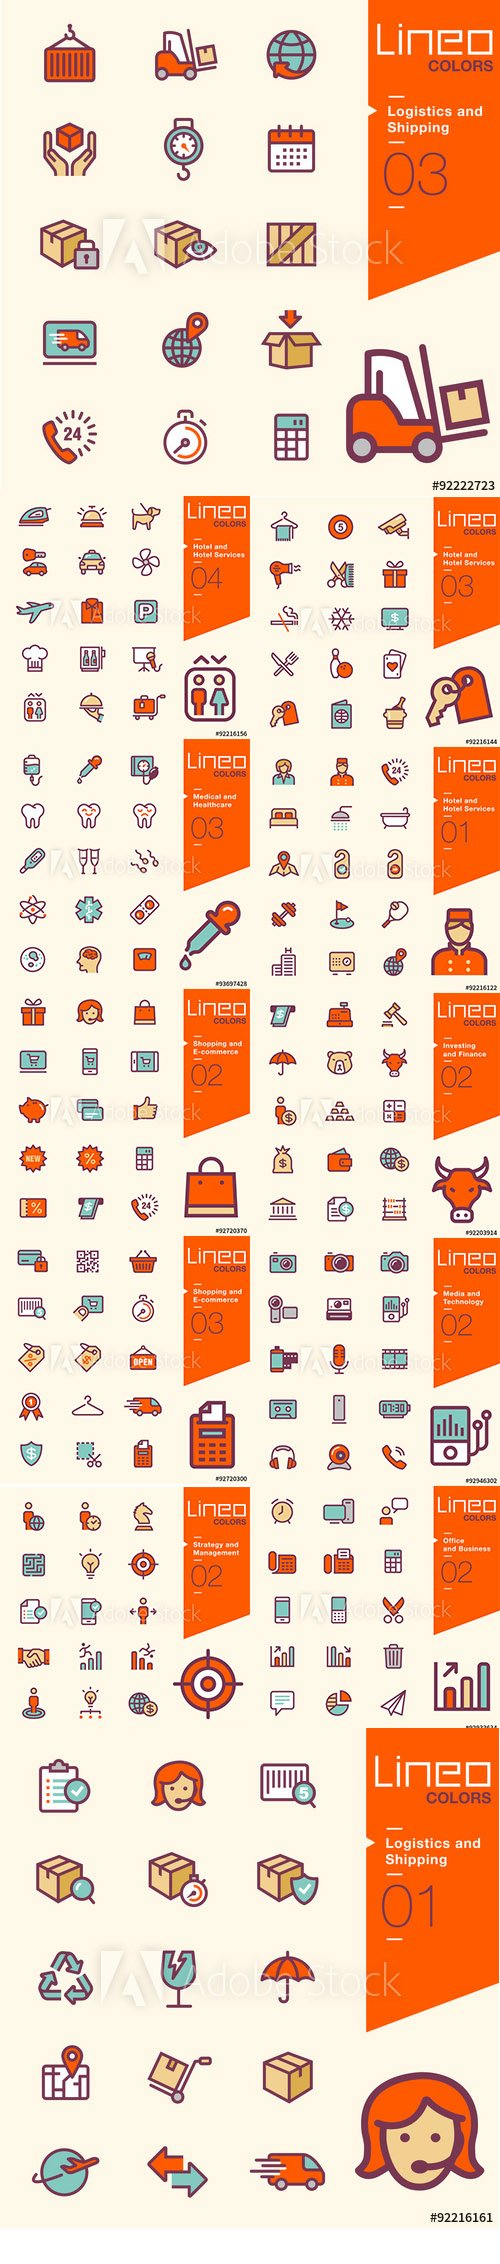 Lineo Colors Icons Pack Vol 4